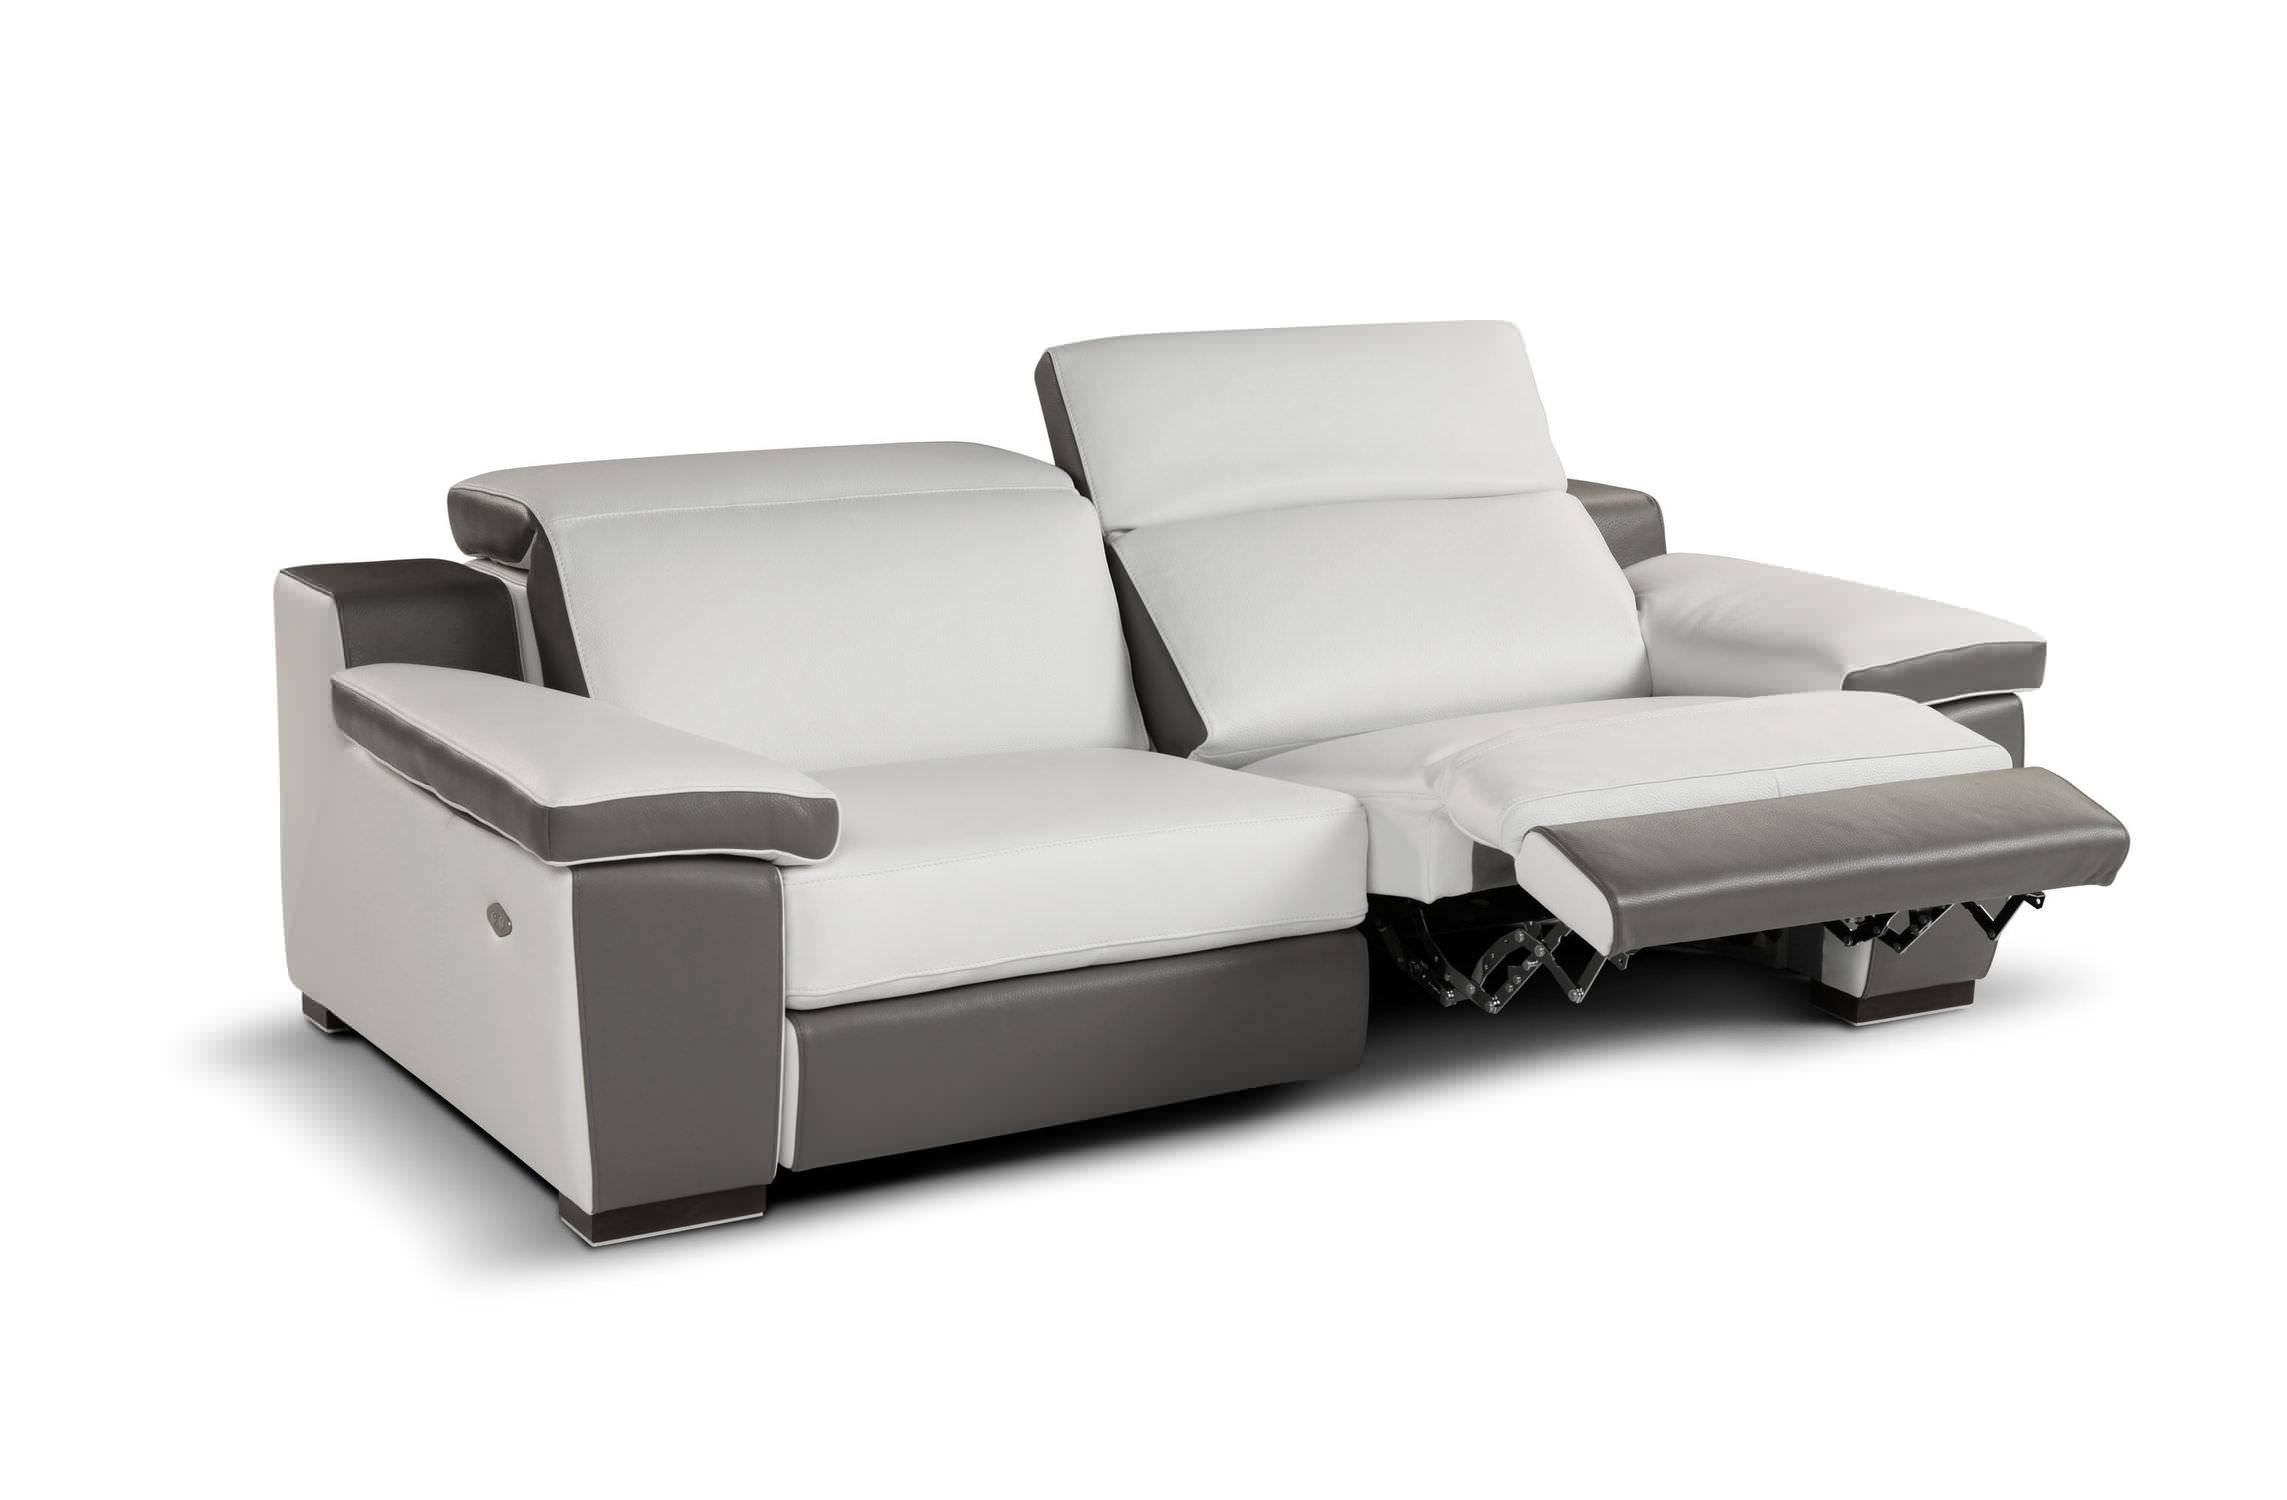 Furniture : Contemporary Sofa Furniture Modern Recliners Recliner within Sofa Chair Recliner (Image 12 of 30)